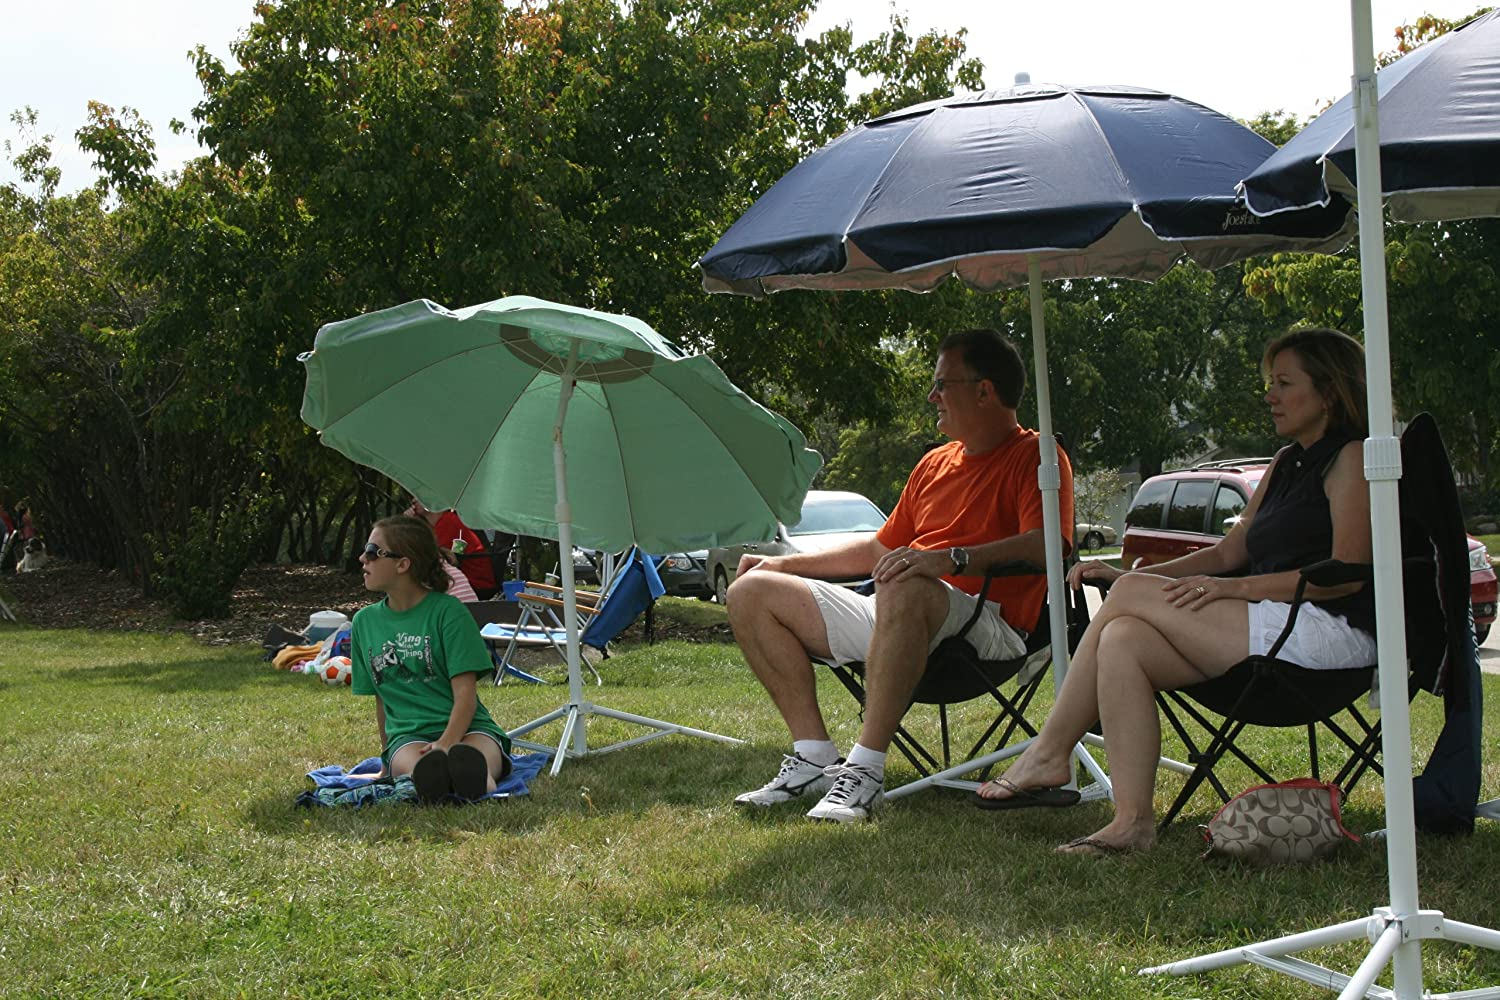 The Original JoeShade JoeShade, Portable Sun Shade Umbrella, Sunshade Umbrella, Sports Umbrella, GREEN